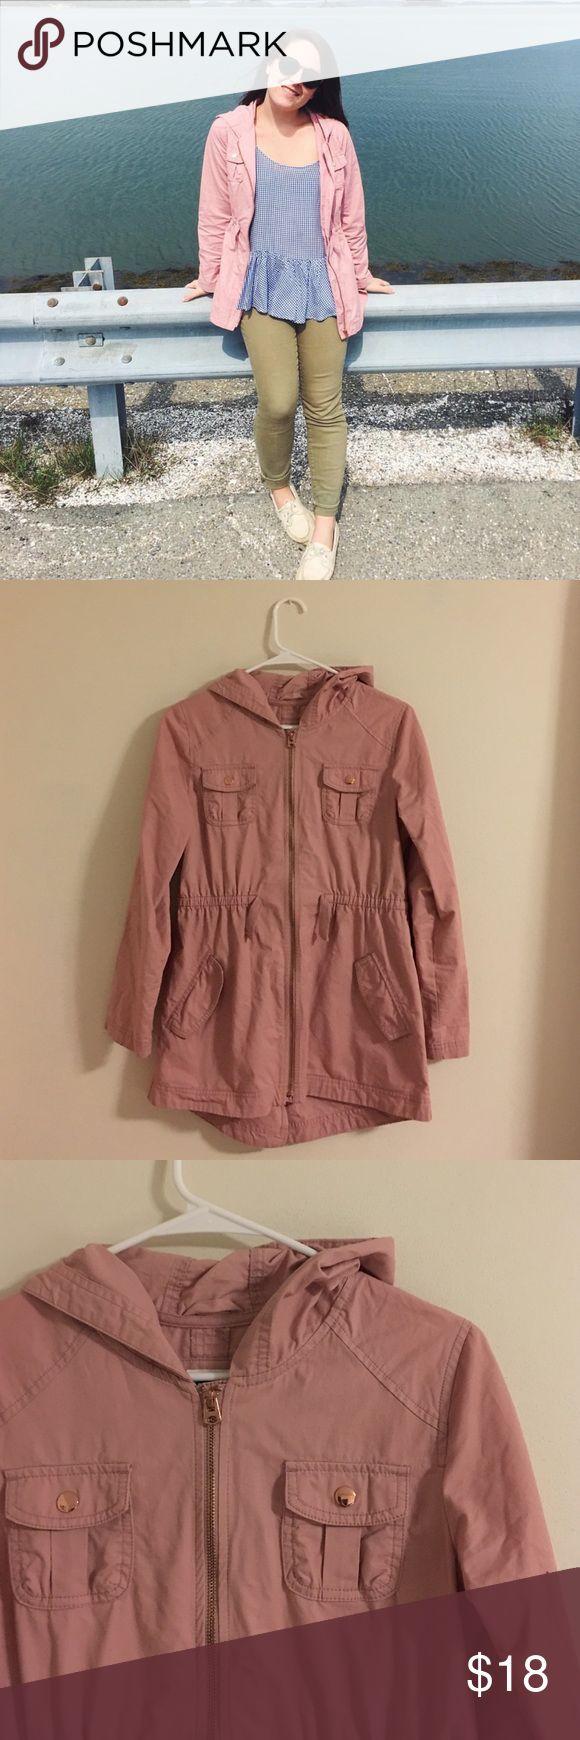 Pink Old Navy Utility Jacket Pink Old Navy Utility Jacket. Very cute with rose gold details on the zippers and pockets. It is a girls XL which fits similar to a women's small (as seen on me in the first picture!) Old Navy Jackets & Coats Utility Jackets